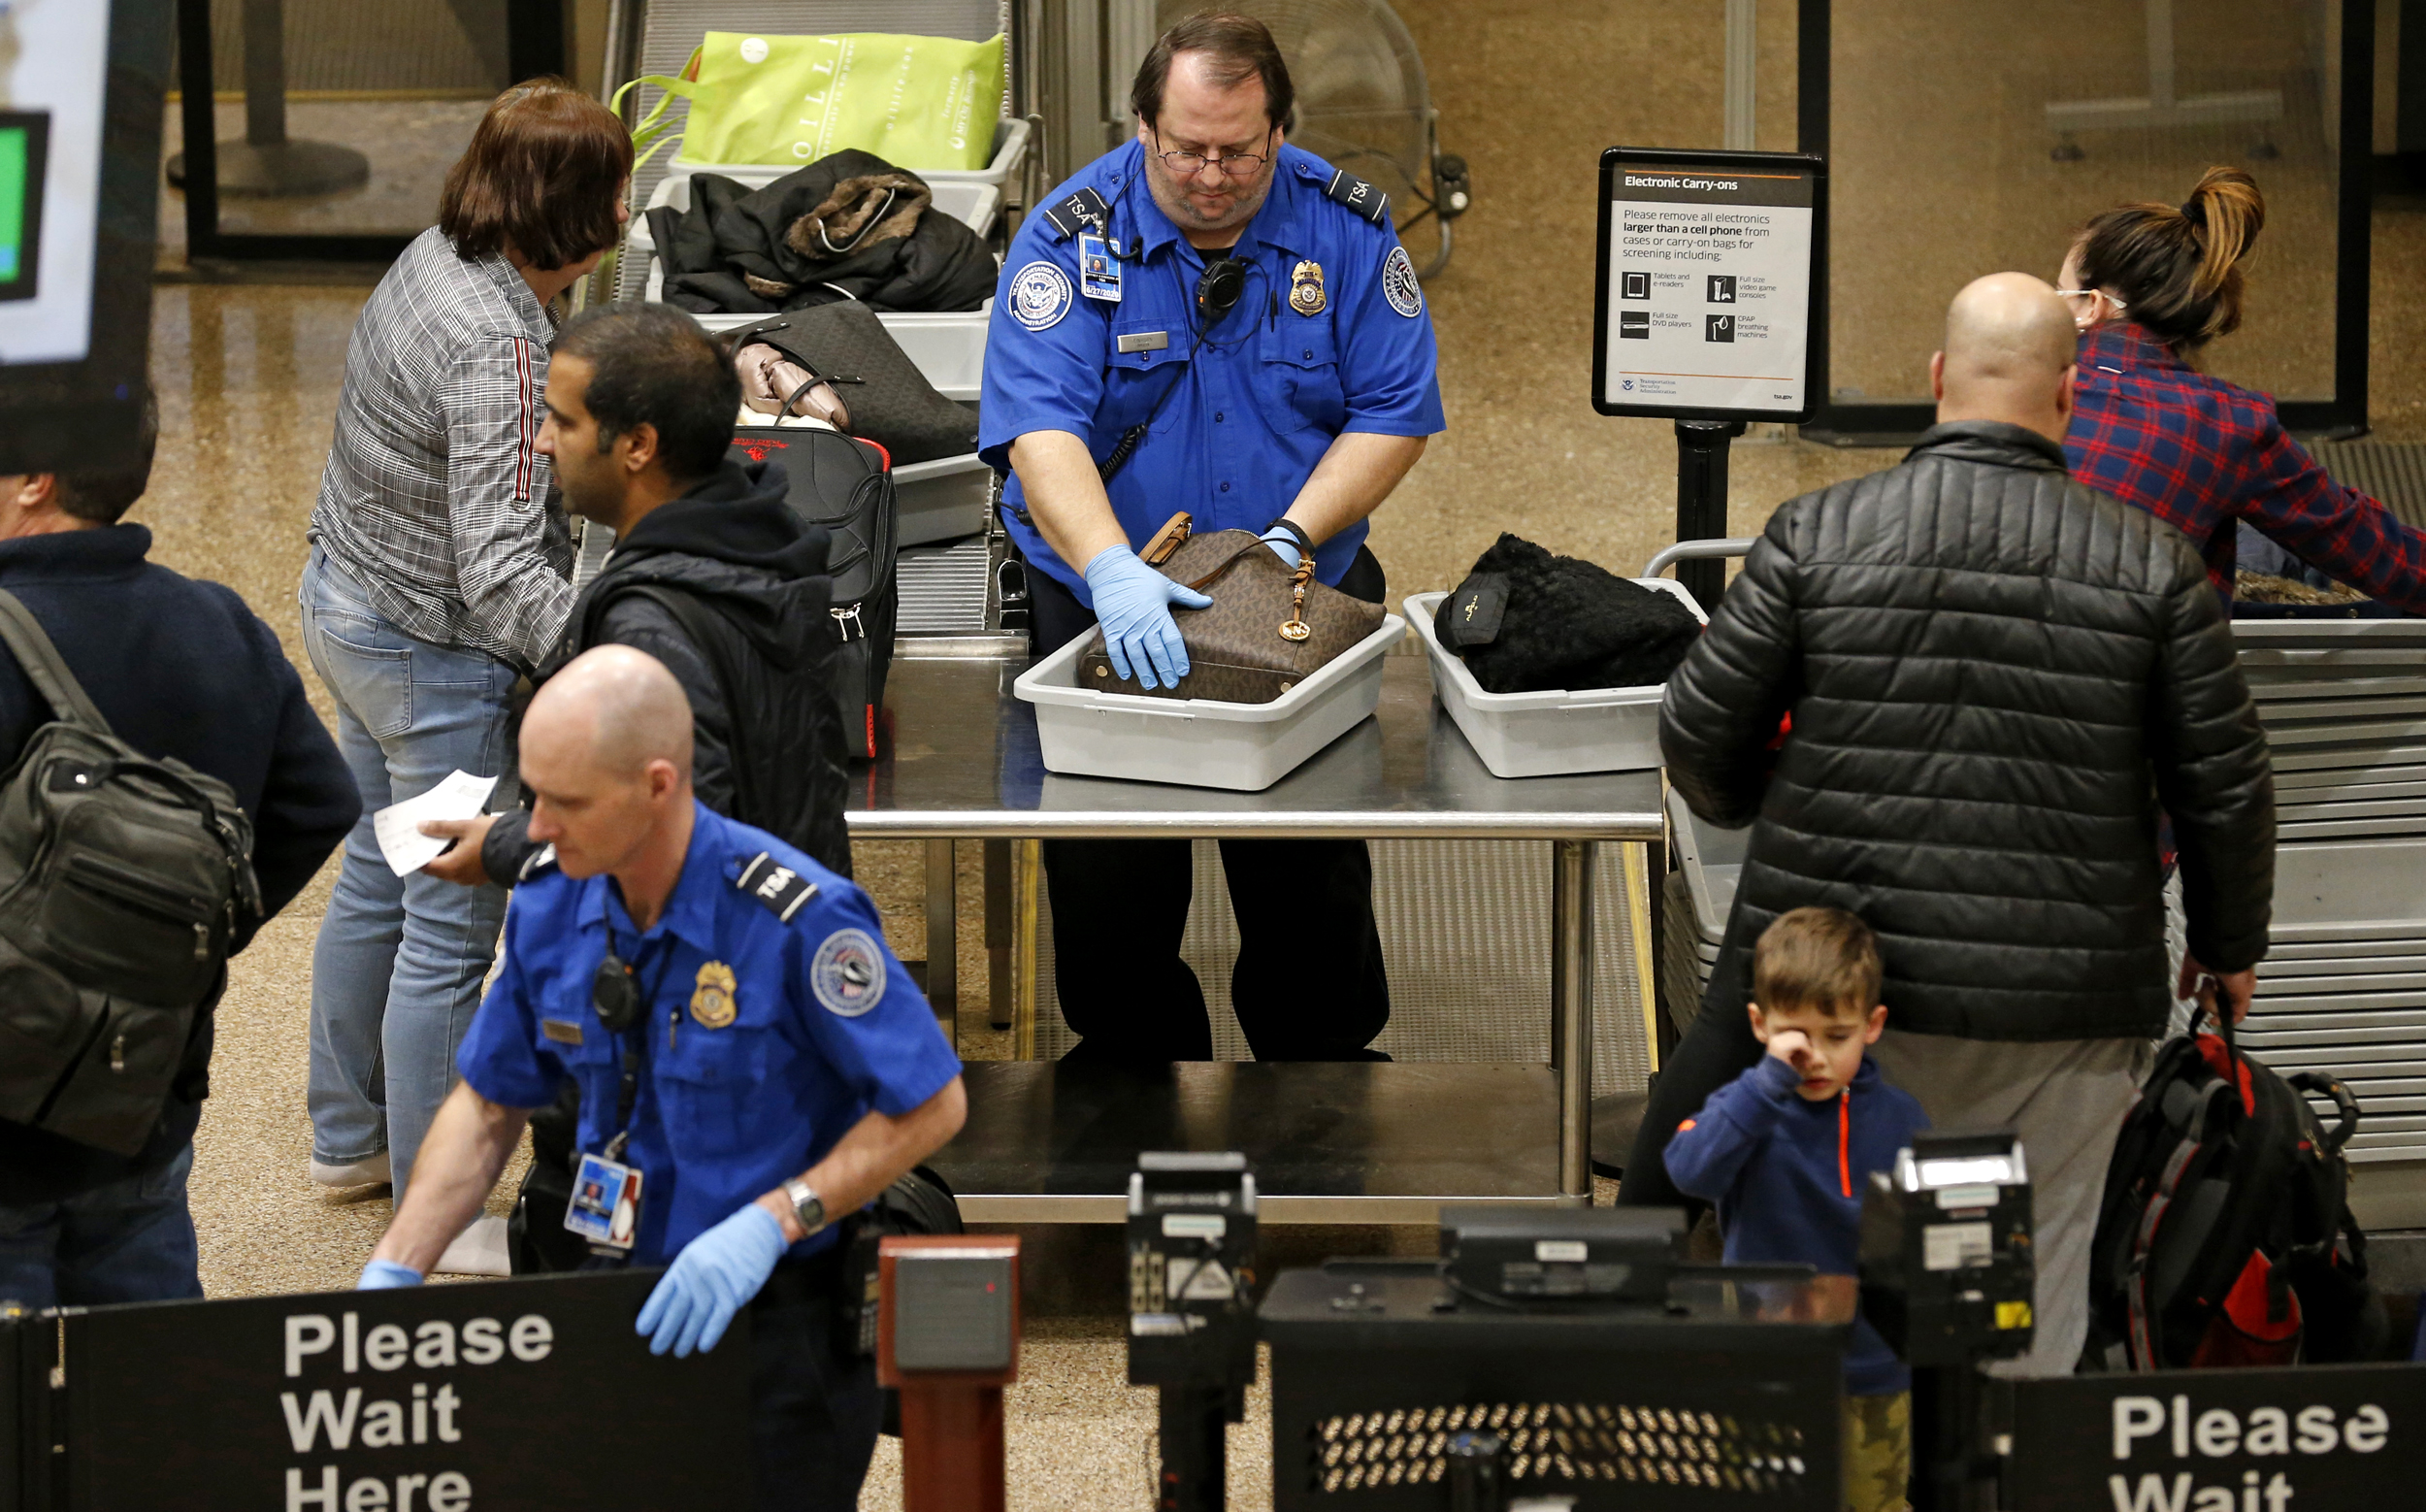 TSA identifies 200 agents, including air marshals, who can